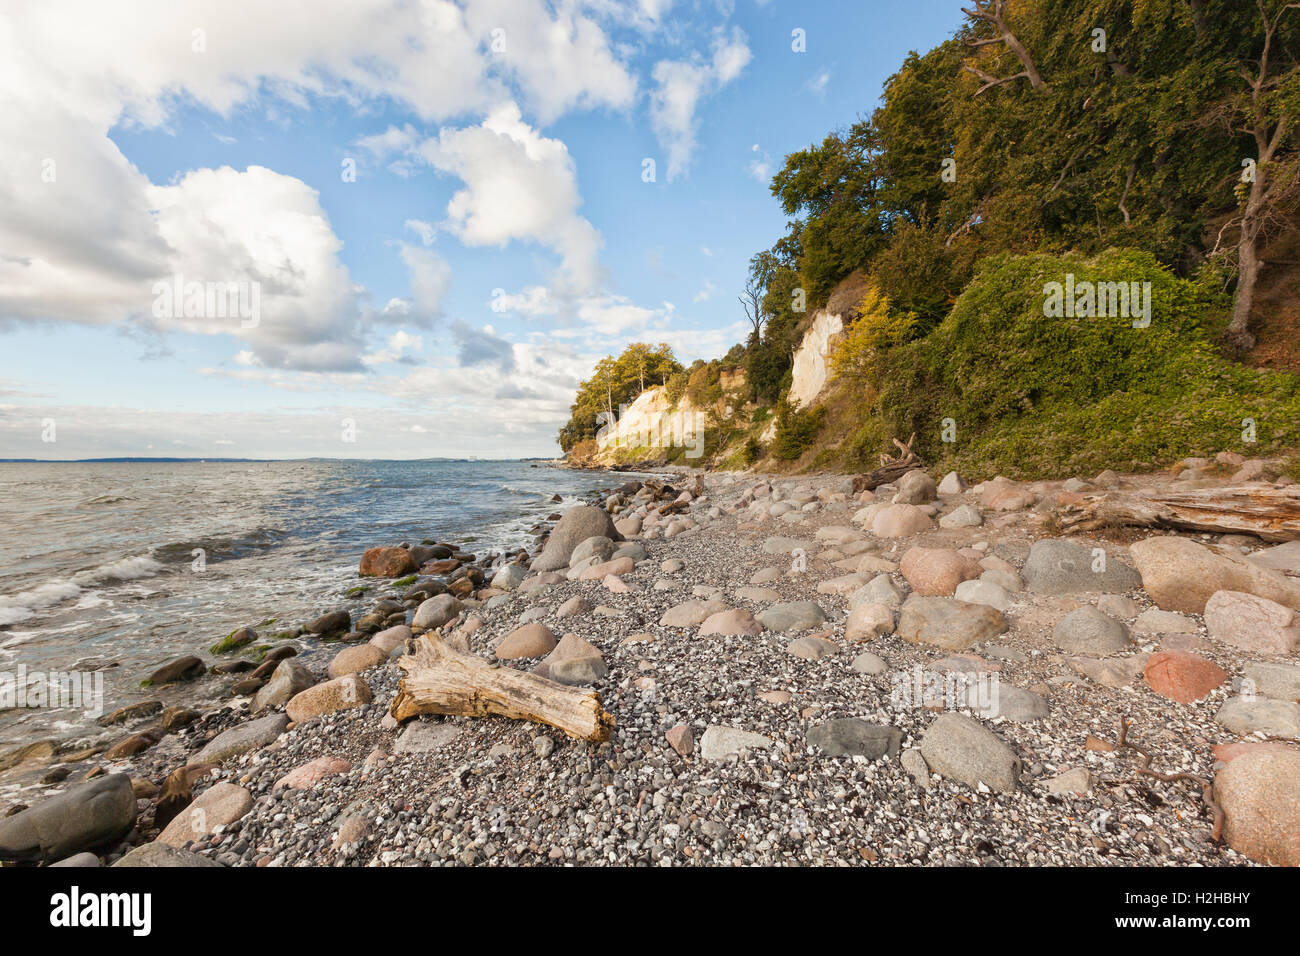 Chalk cliffs at Jasmund National Park, Rügen, Germany Stock Photo